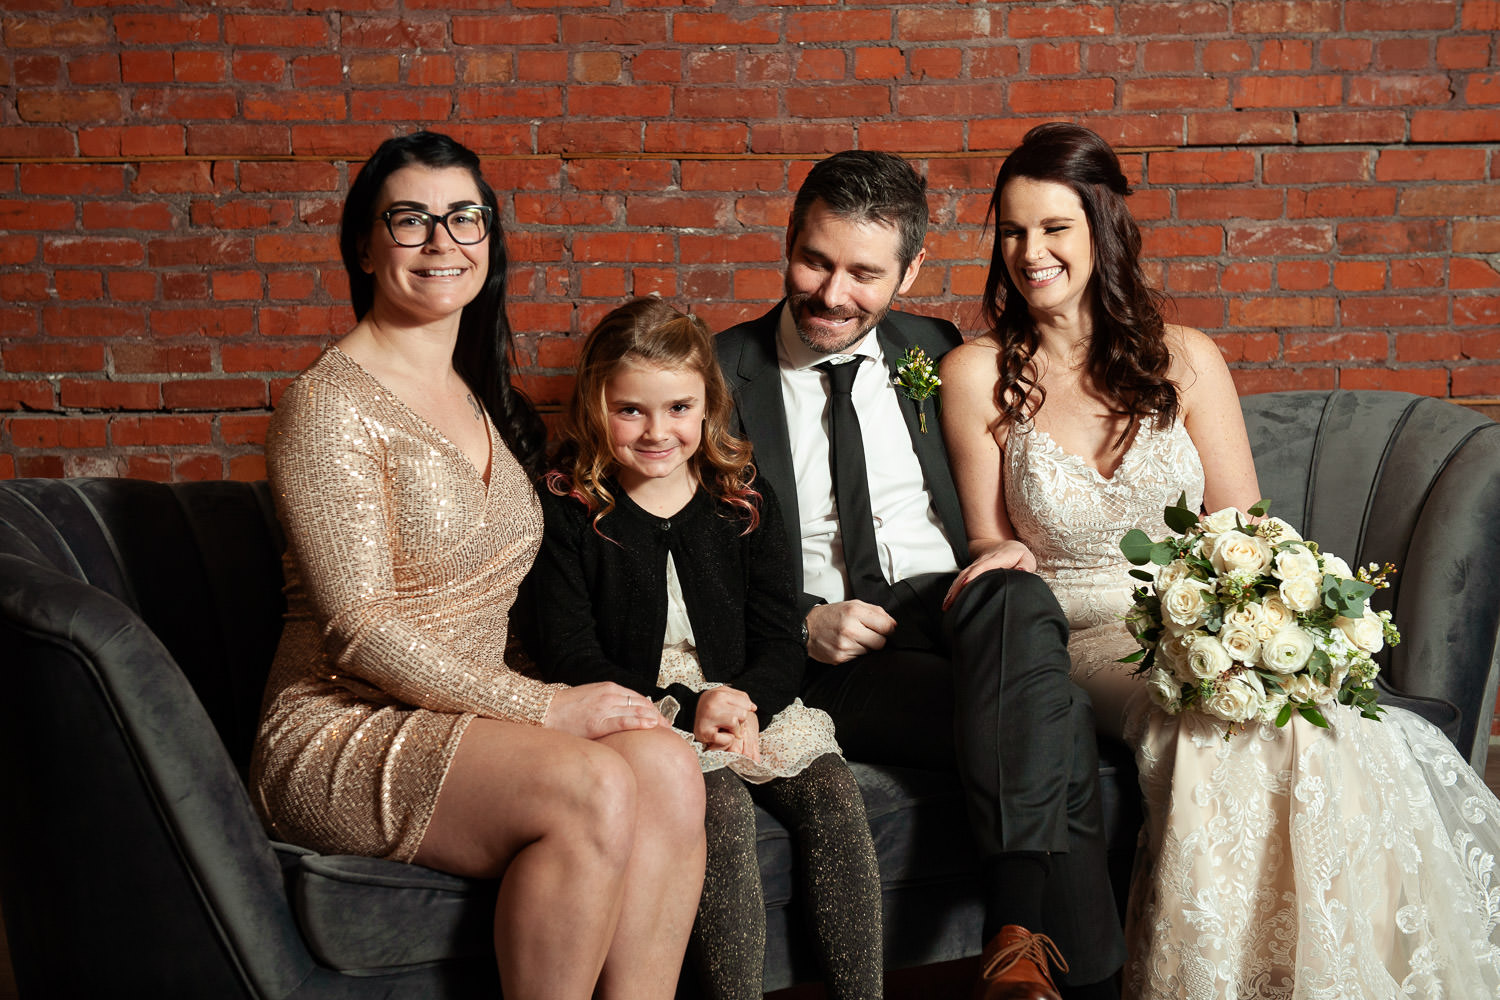 Family photos at Venue 308 captured by Tara Whittaker Photography